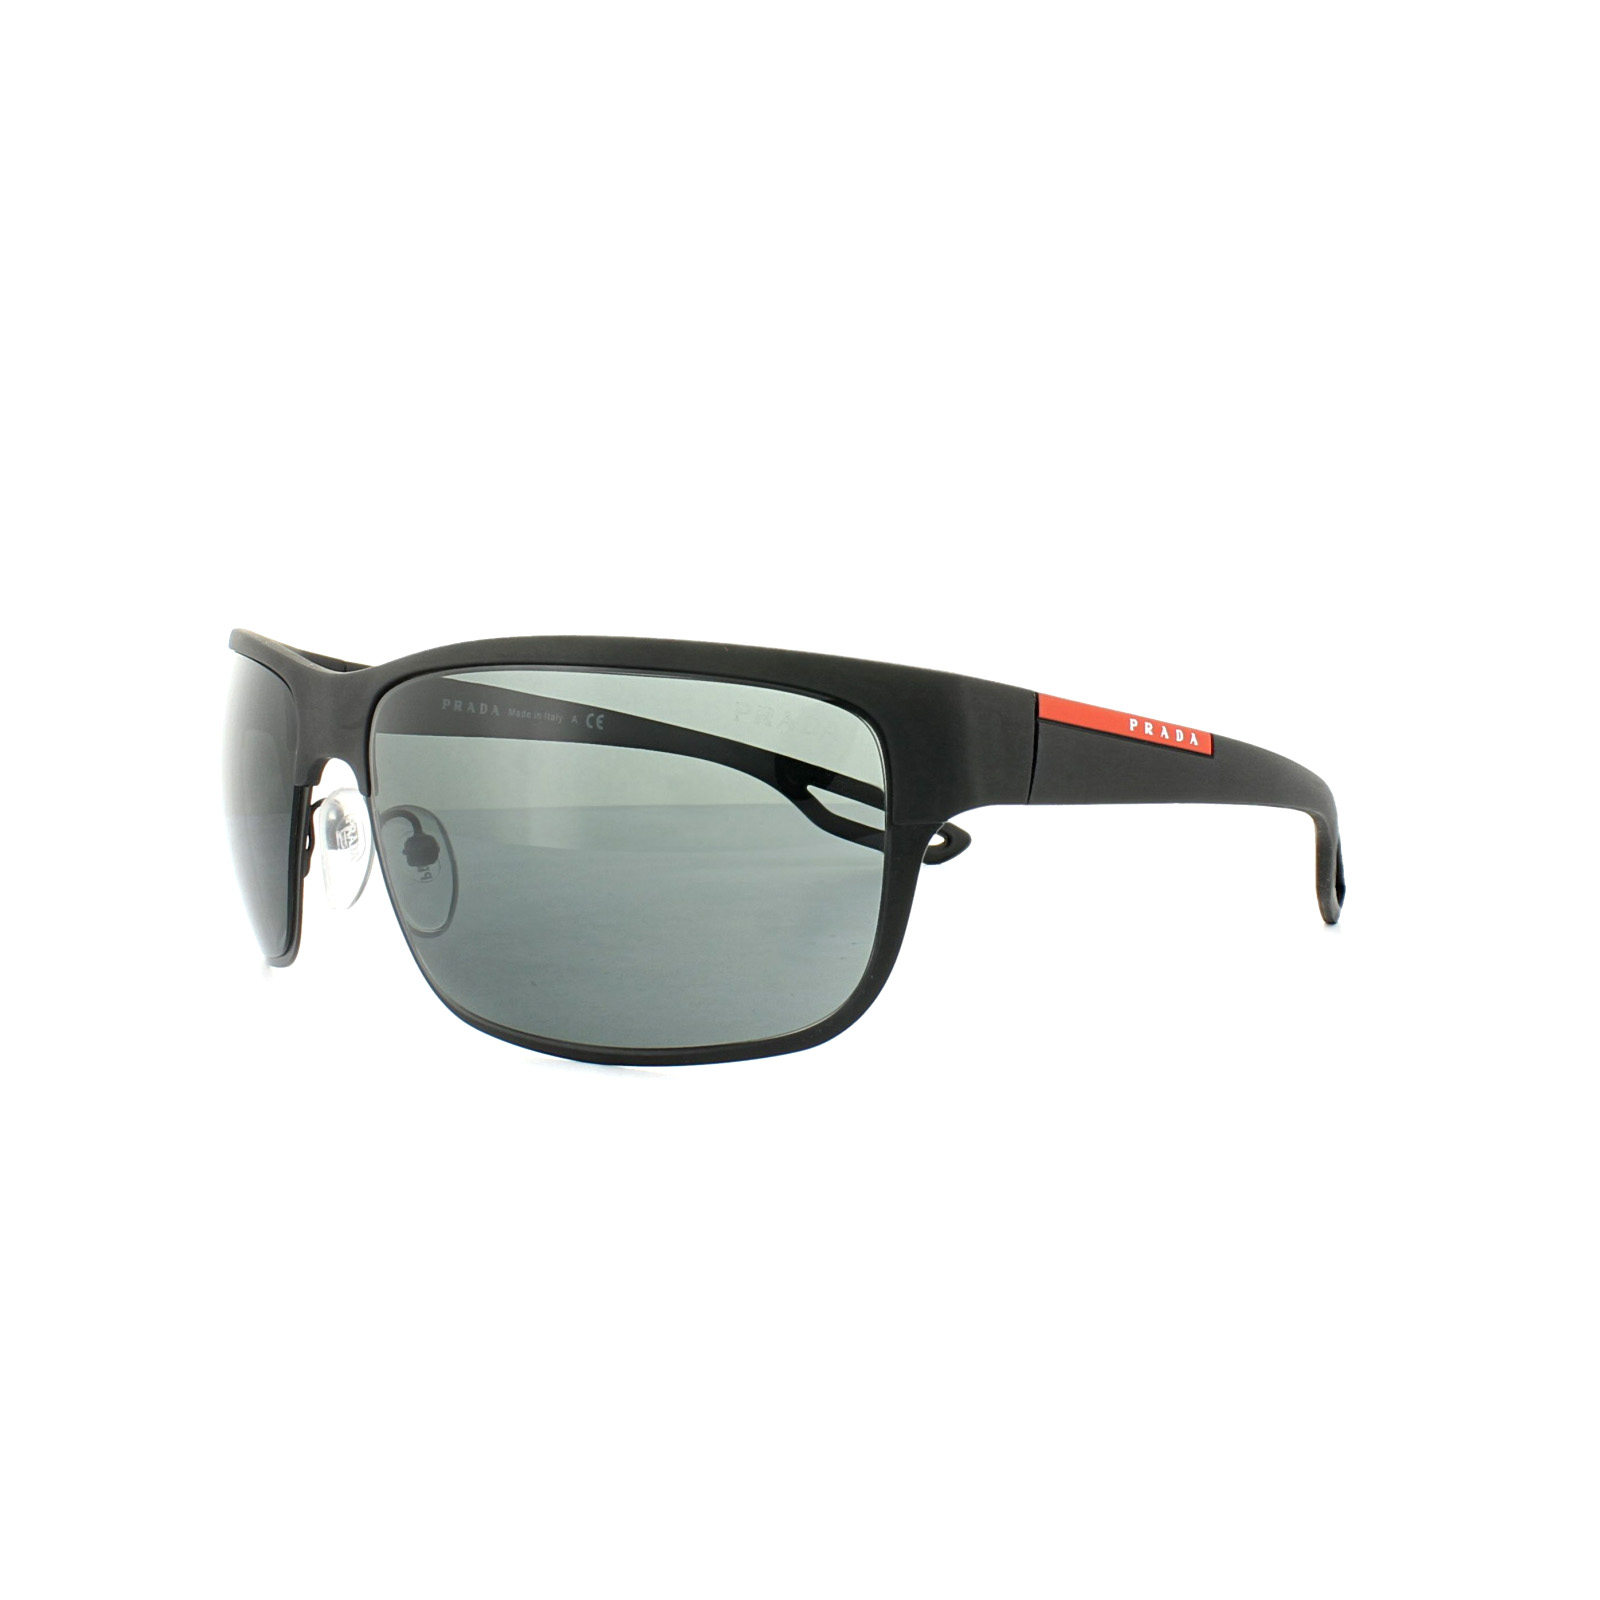 08d80050fe5 Sentinel Prada Sport Sunglasses PS50QS DG01A1 Rubber Matte Black Grey